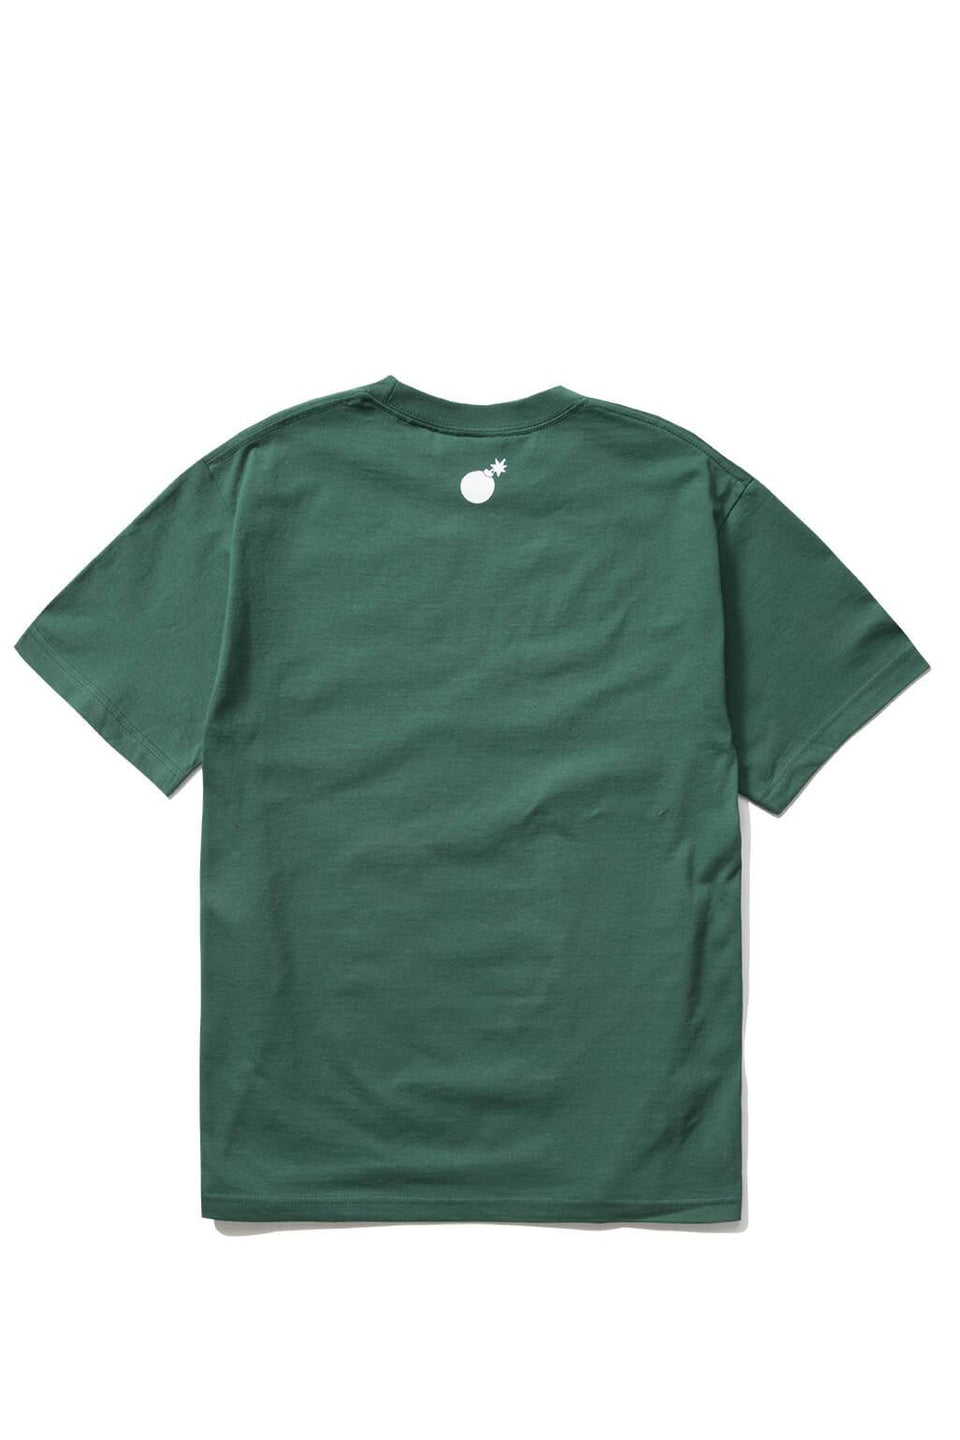 The Hundreds Forever Bar T-Shirt Forest Green Back